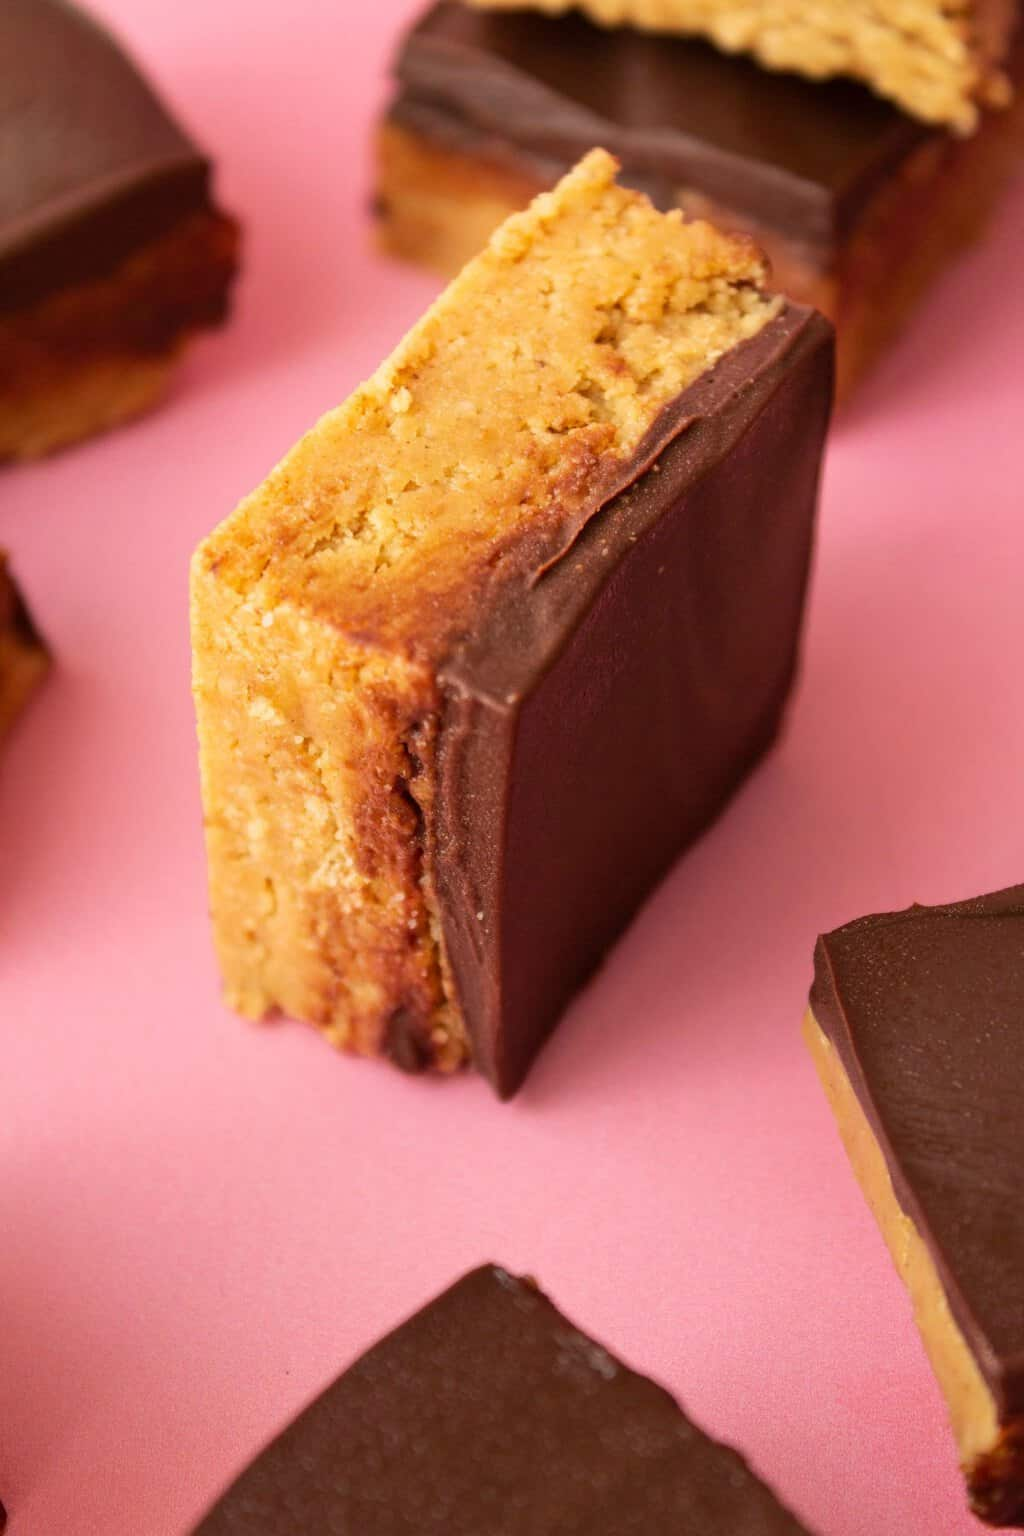 A vegan peanut butter square on a pink surface.